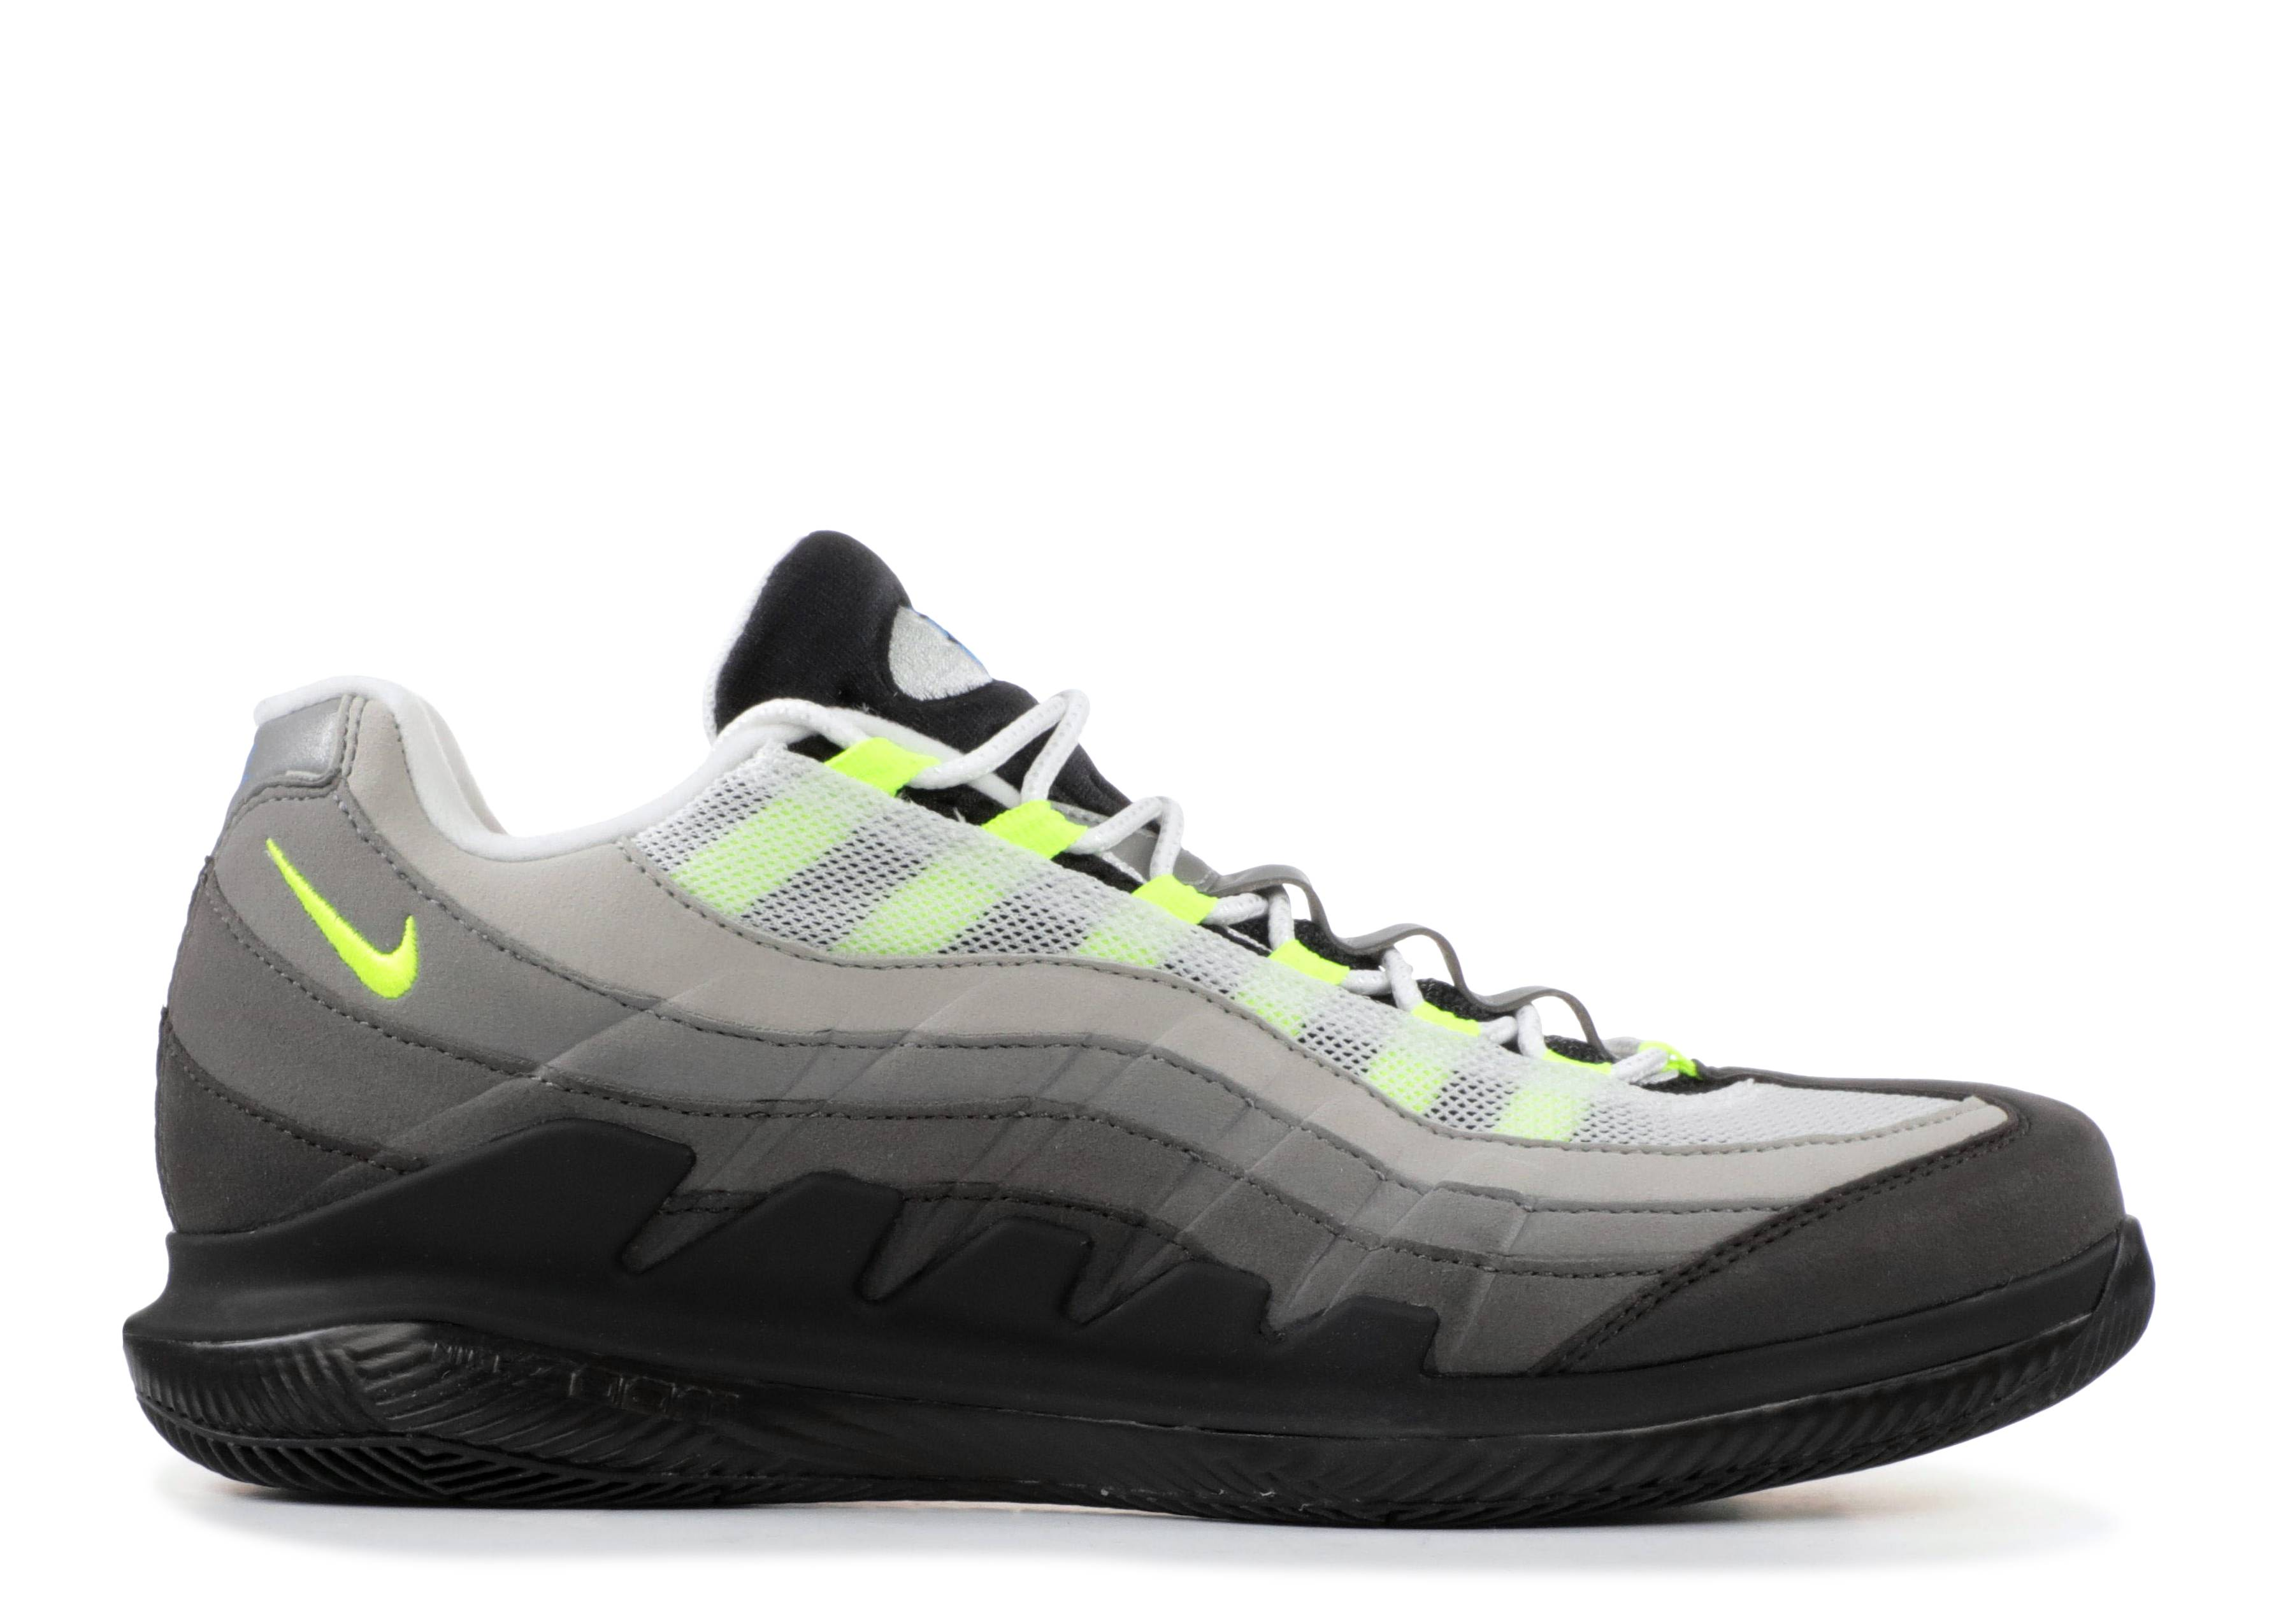 Nike Zoom Vapor RF x AM 95